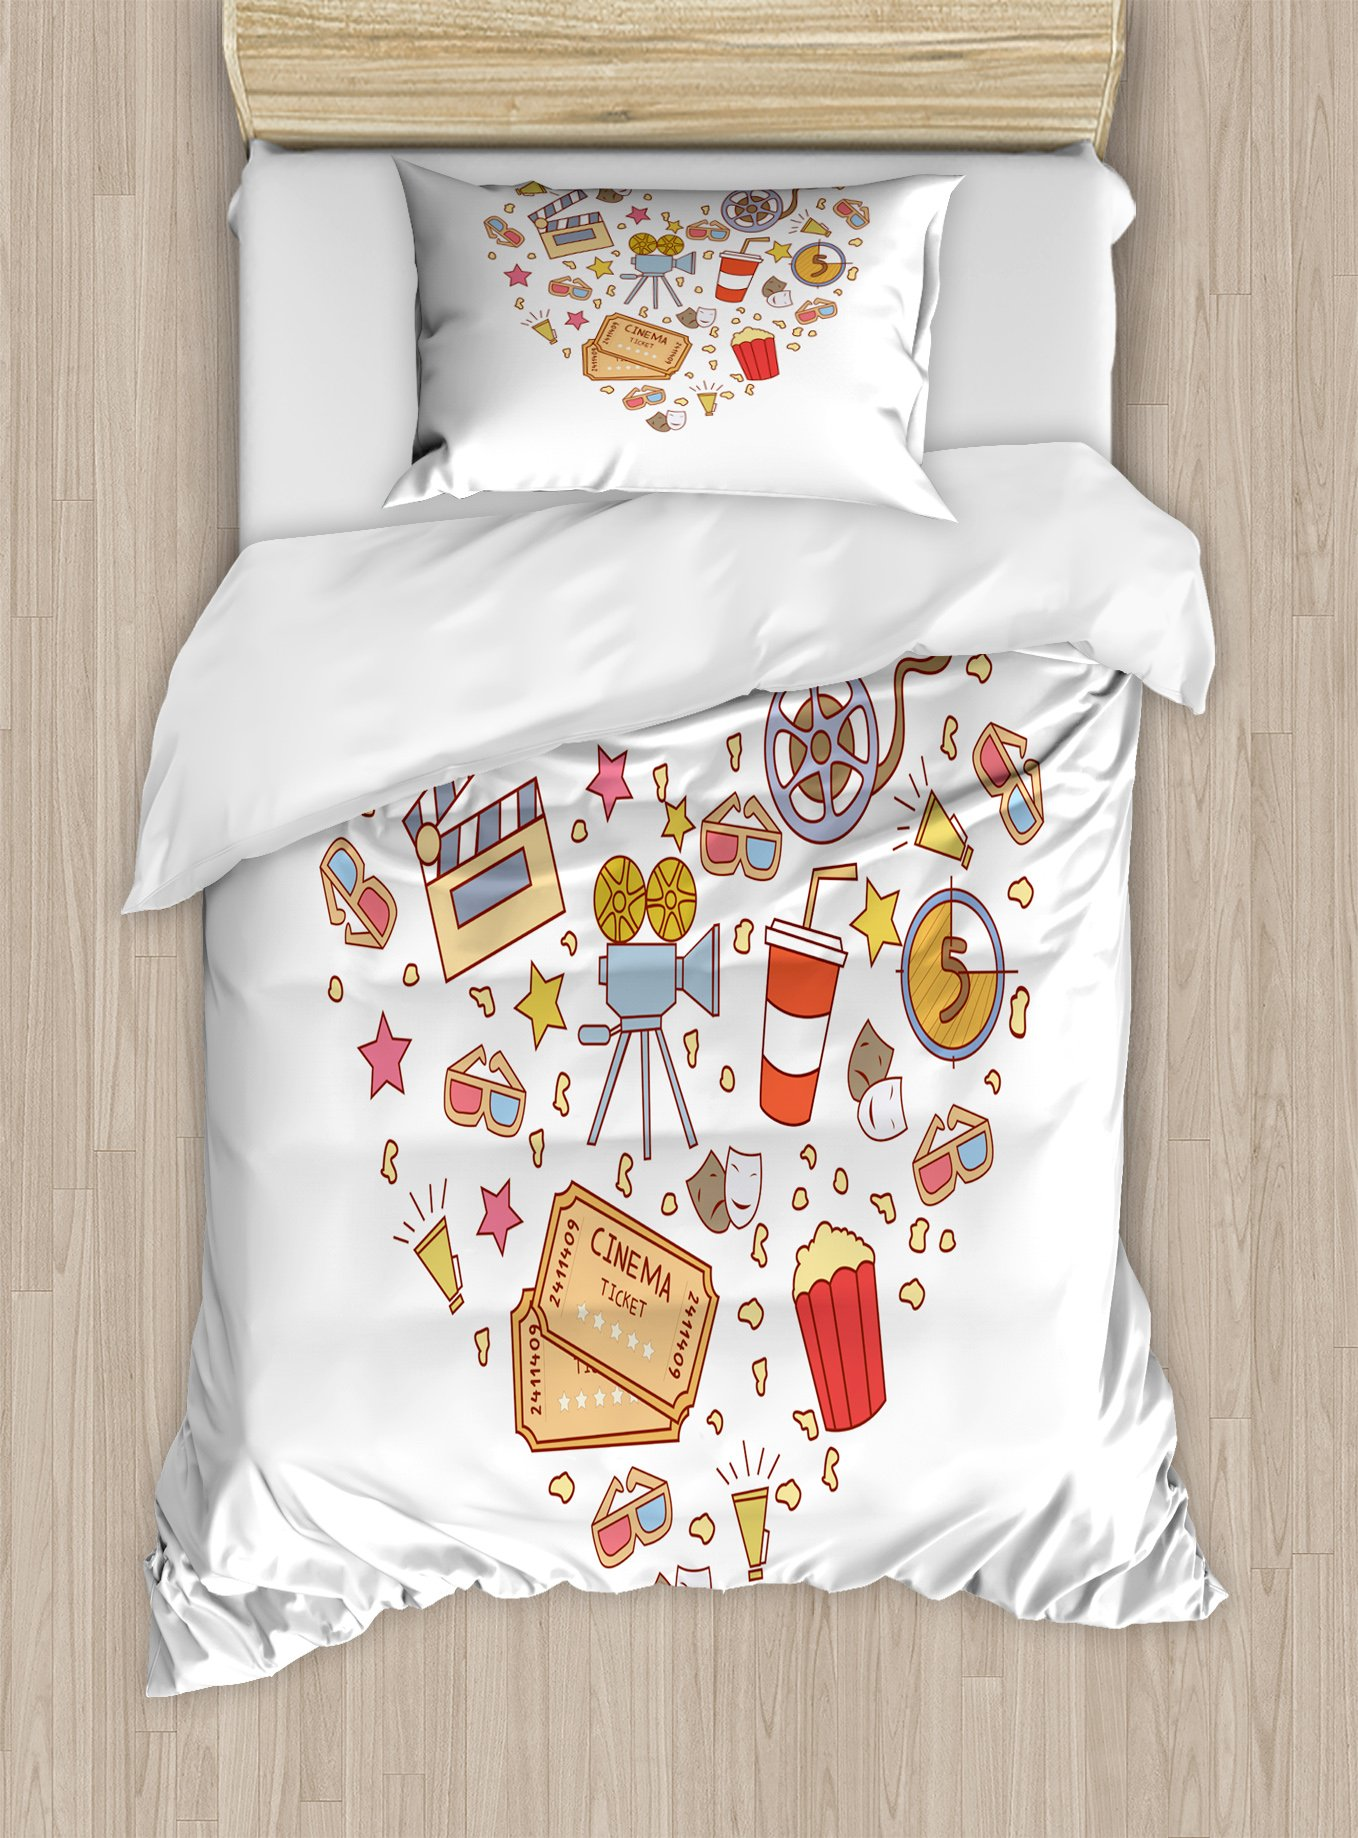 Ambesonne Movie Theater Twin Size Duvet Cover Set, Cinema Attribute Love Retro Icons Collection in The Shape of a Heart Colorful, Decorative 2 Piece Bedding Set with 1 Pillow Sham, Multicolor